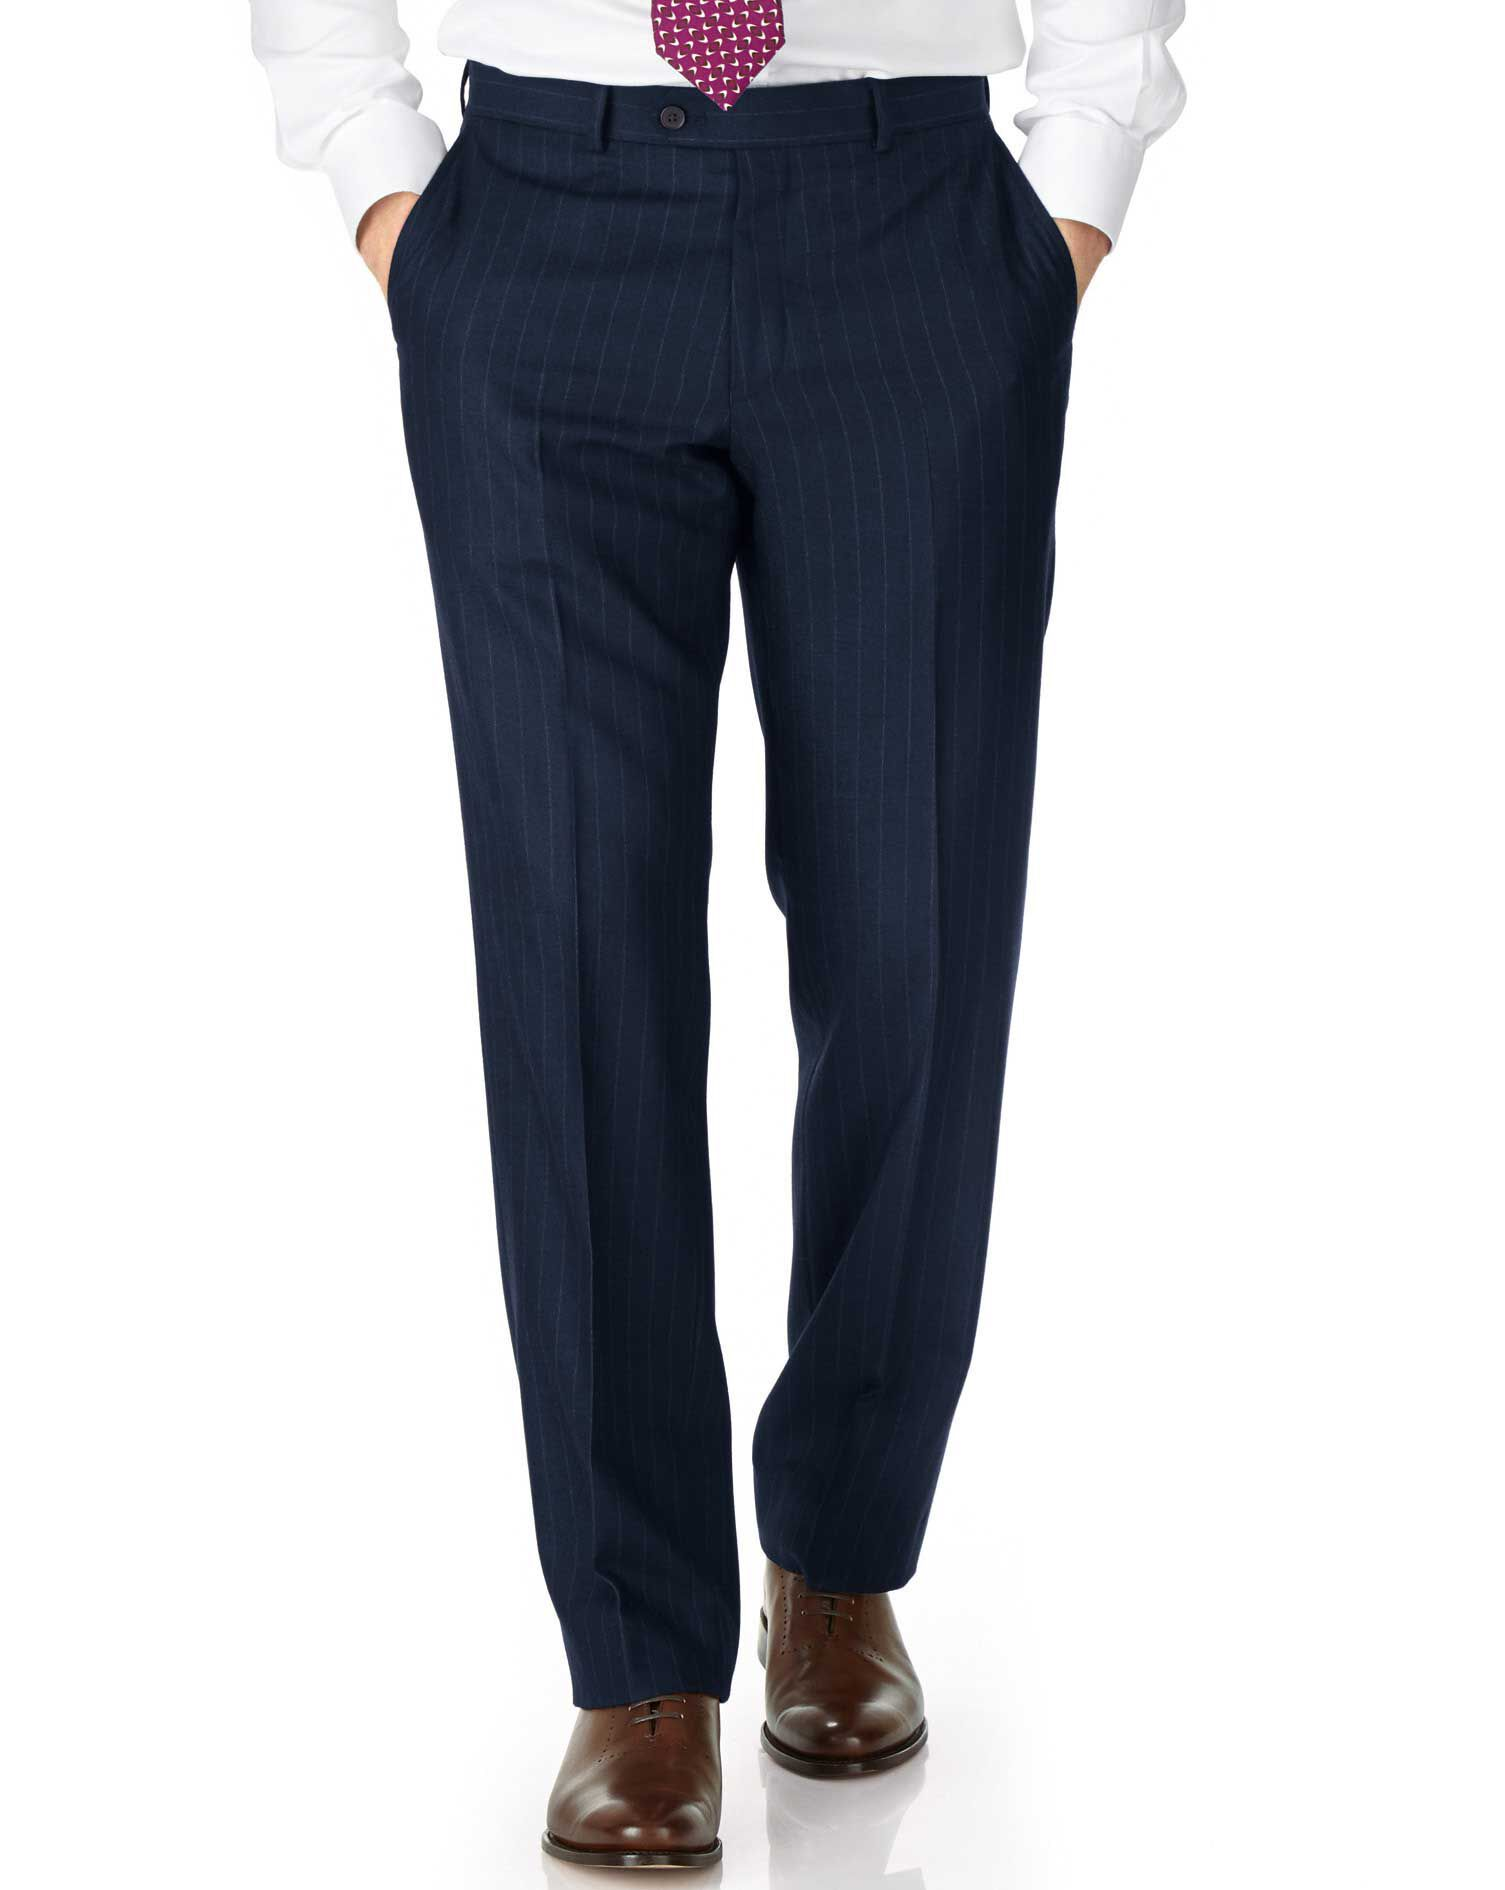 Navy Classic Fit Saxony Business Suit Trousers Size W32 L38 by Charles Tyrwhitt